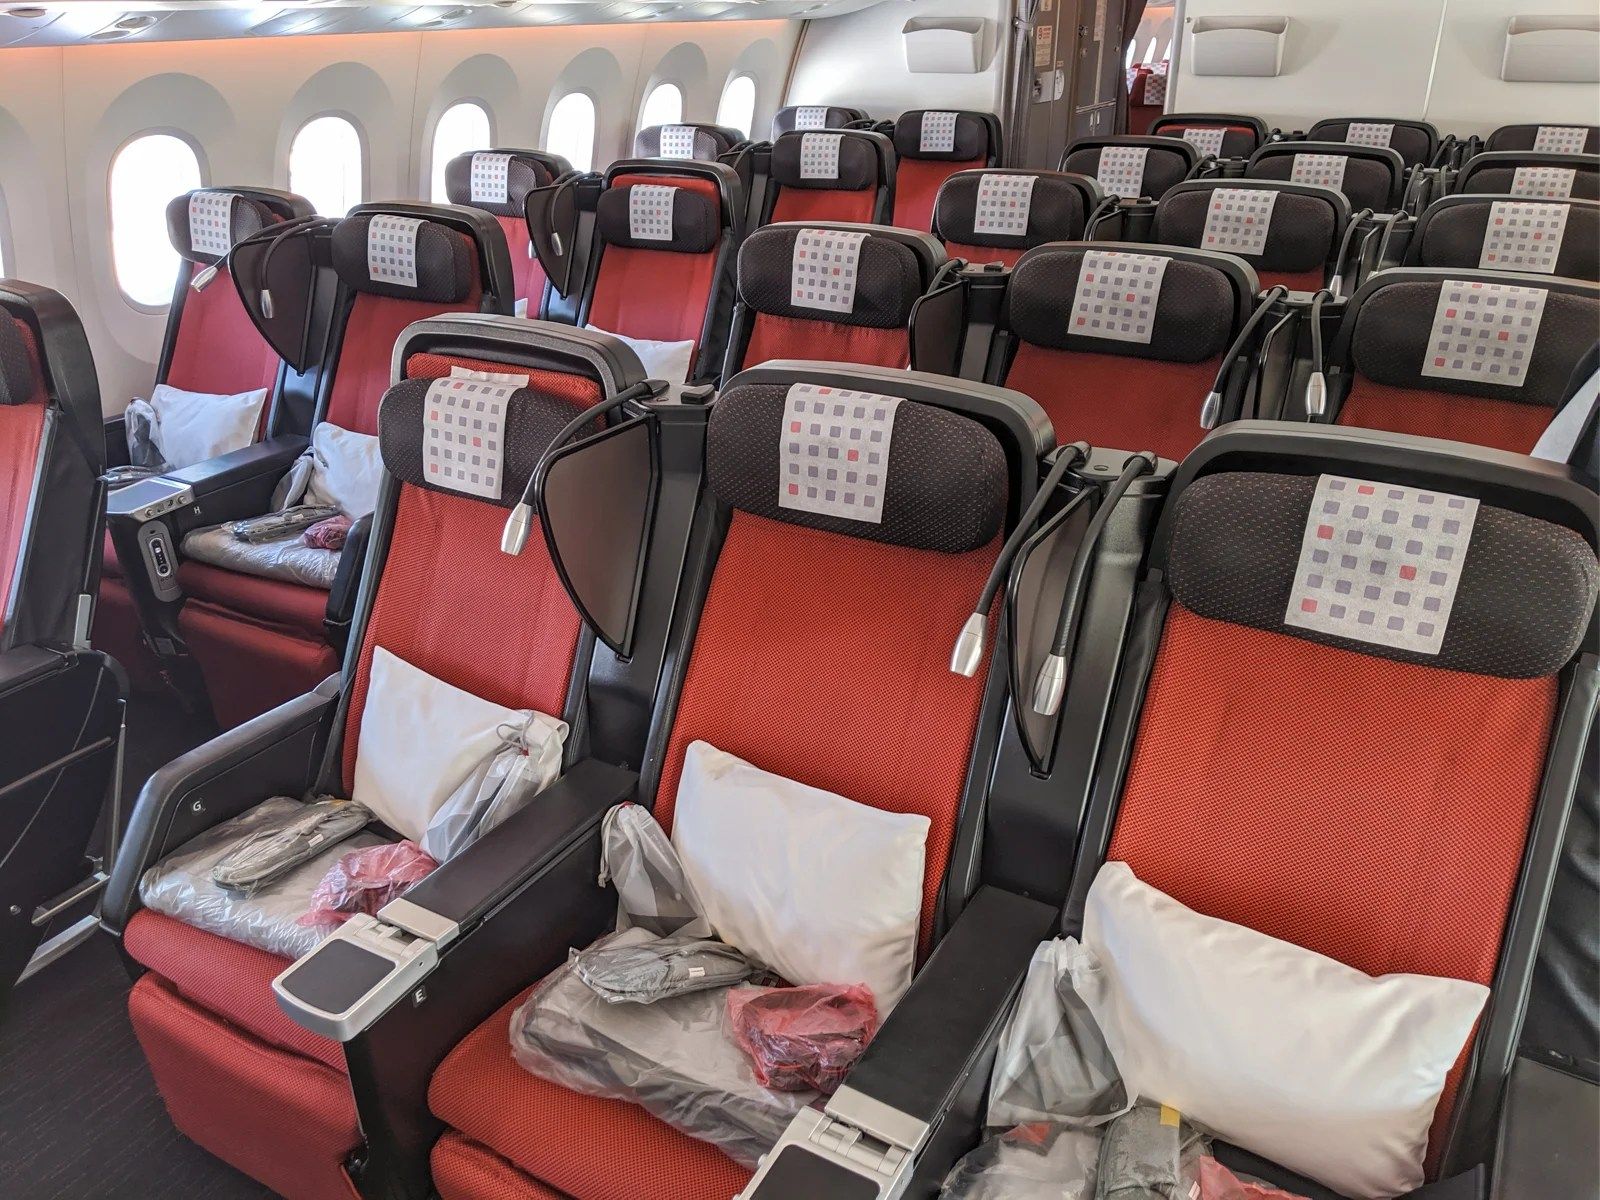 So close to greatness: A review of Japan Airlines in a Boeing 787-9 in premium economy from Tokyo to Dallas